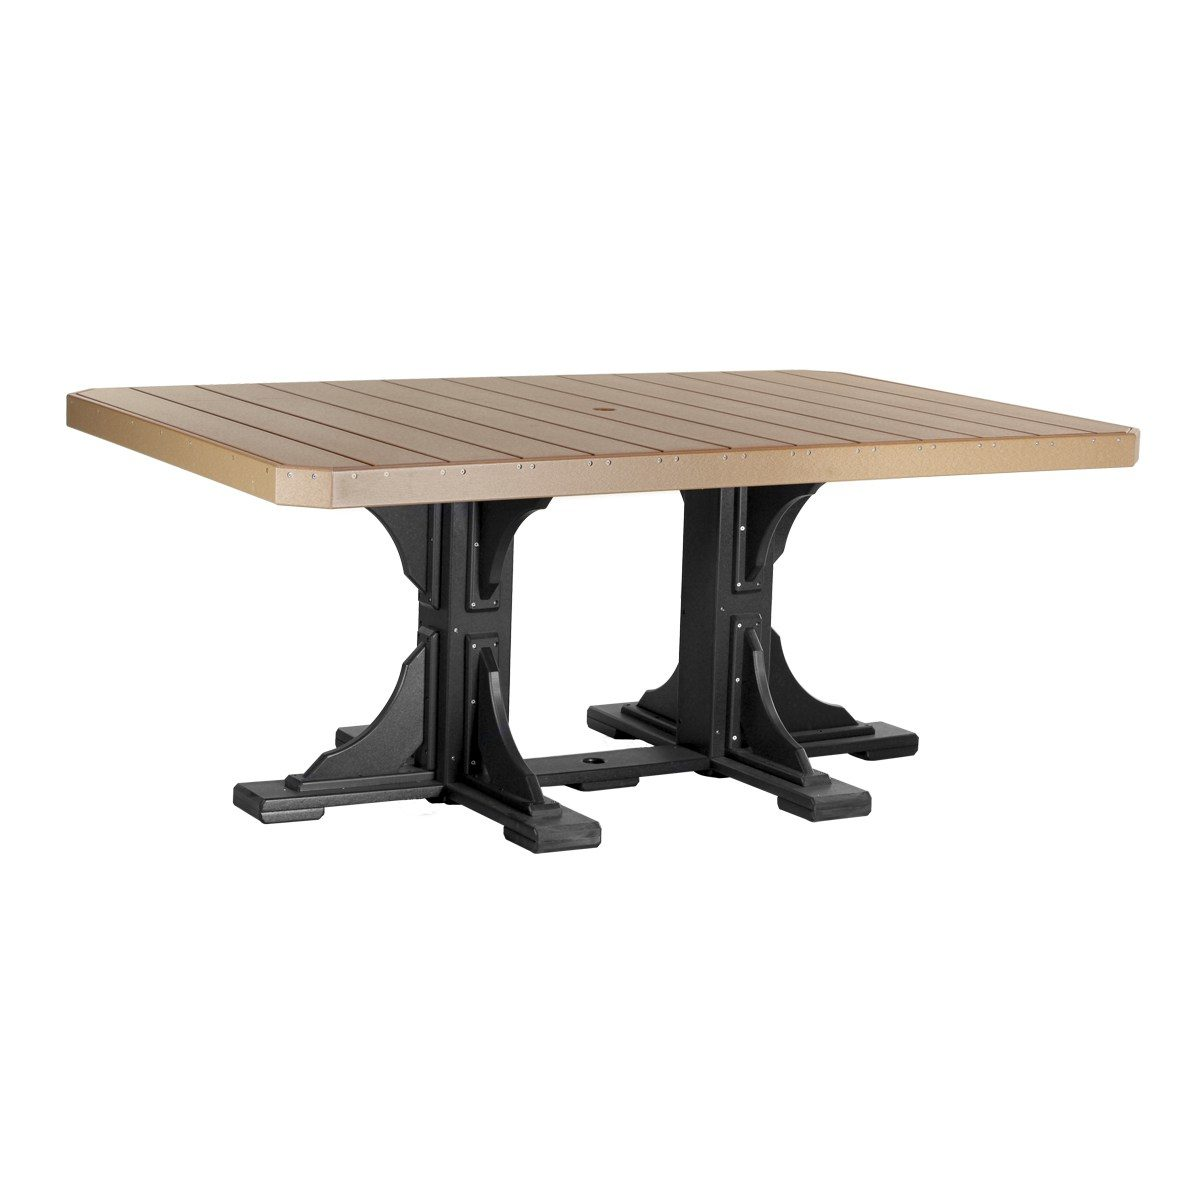 Rectangular Dining Table - Cedar & Black